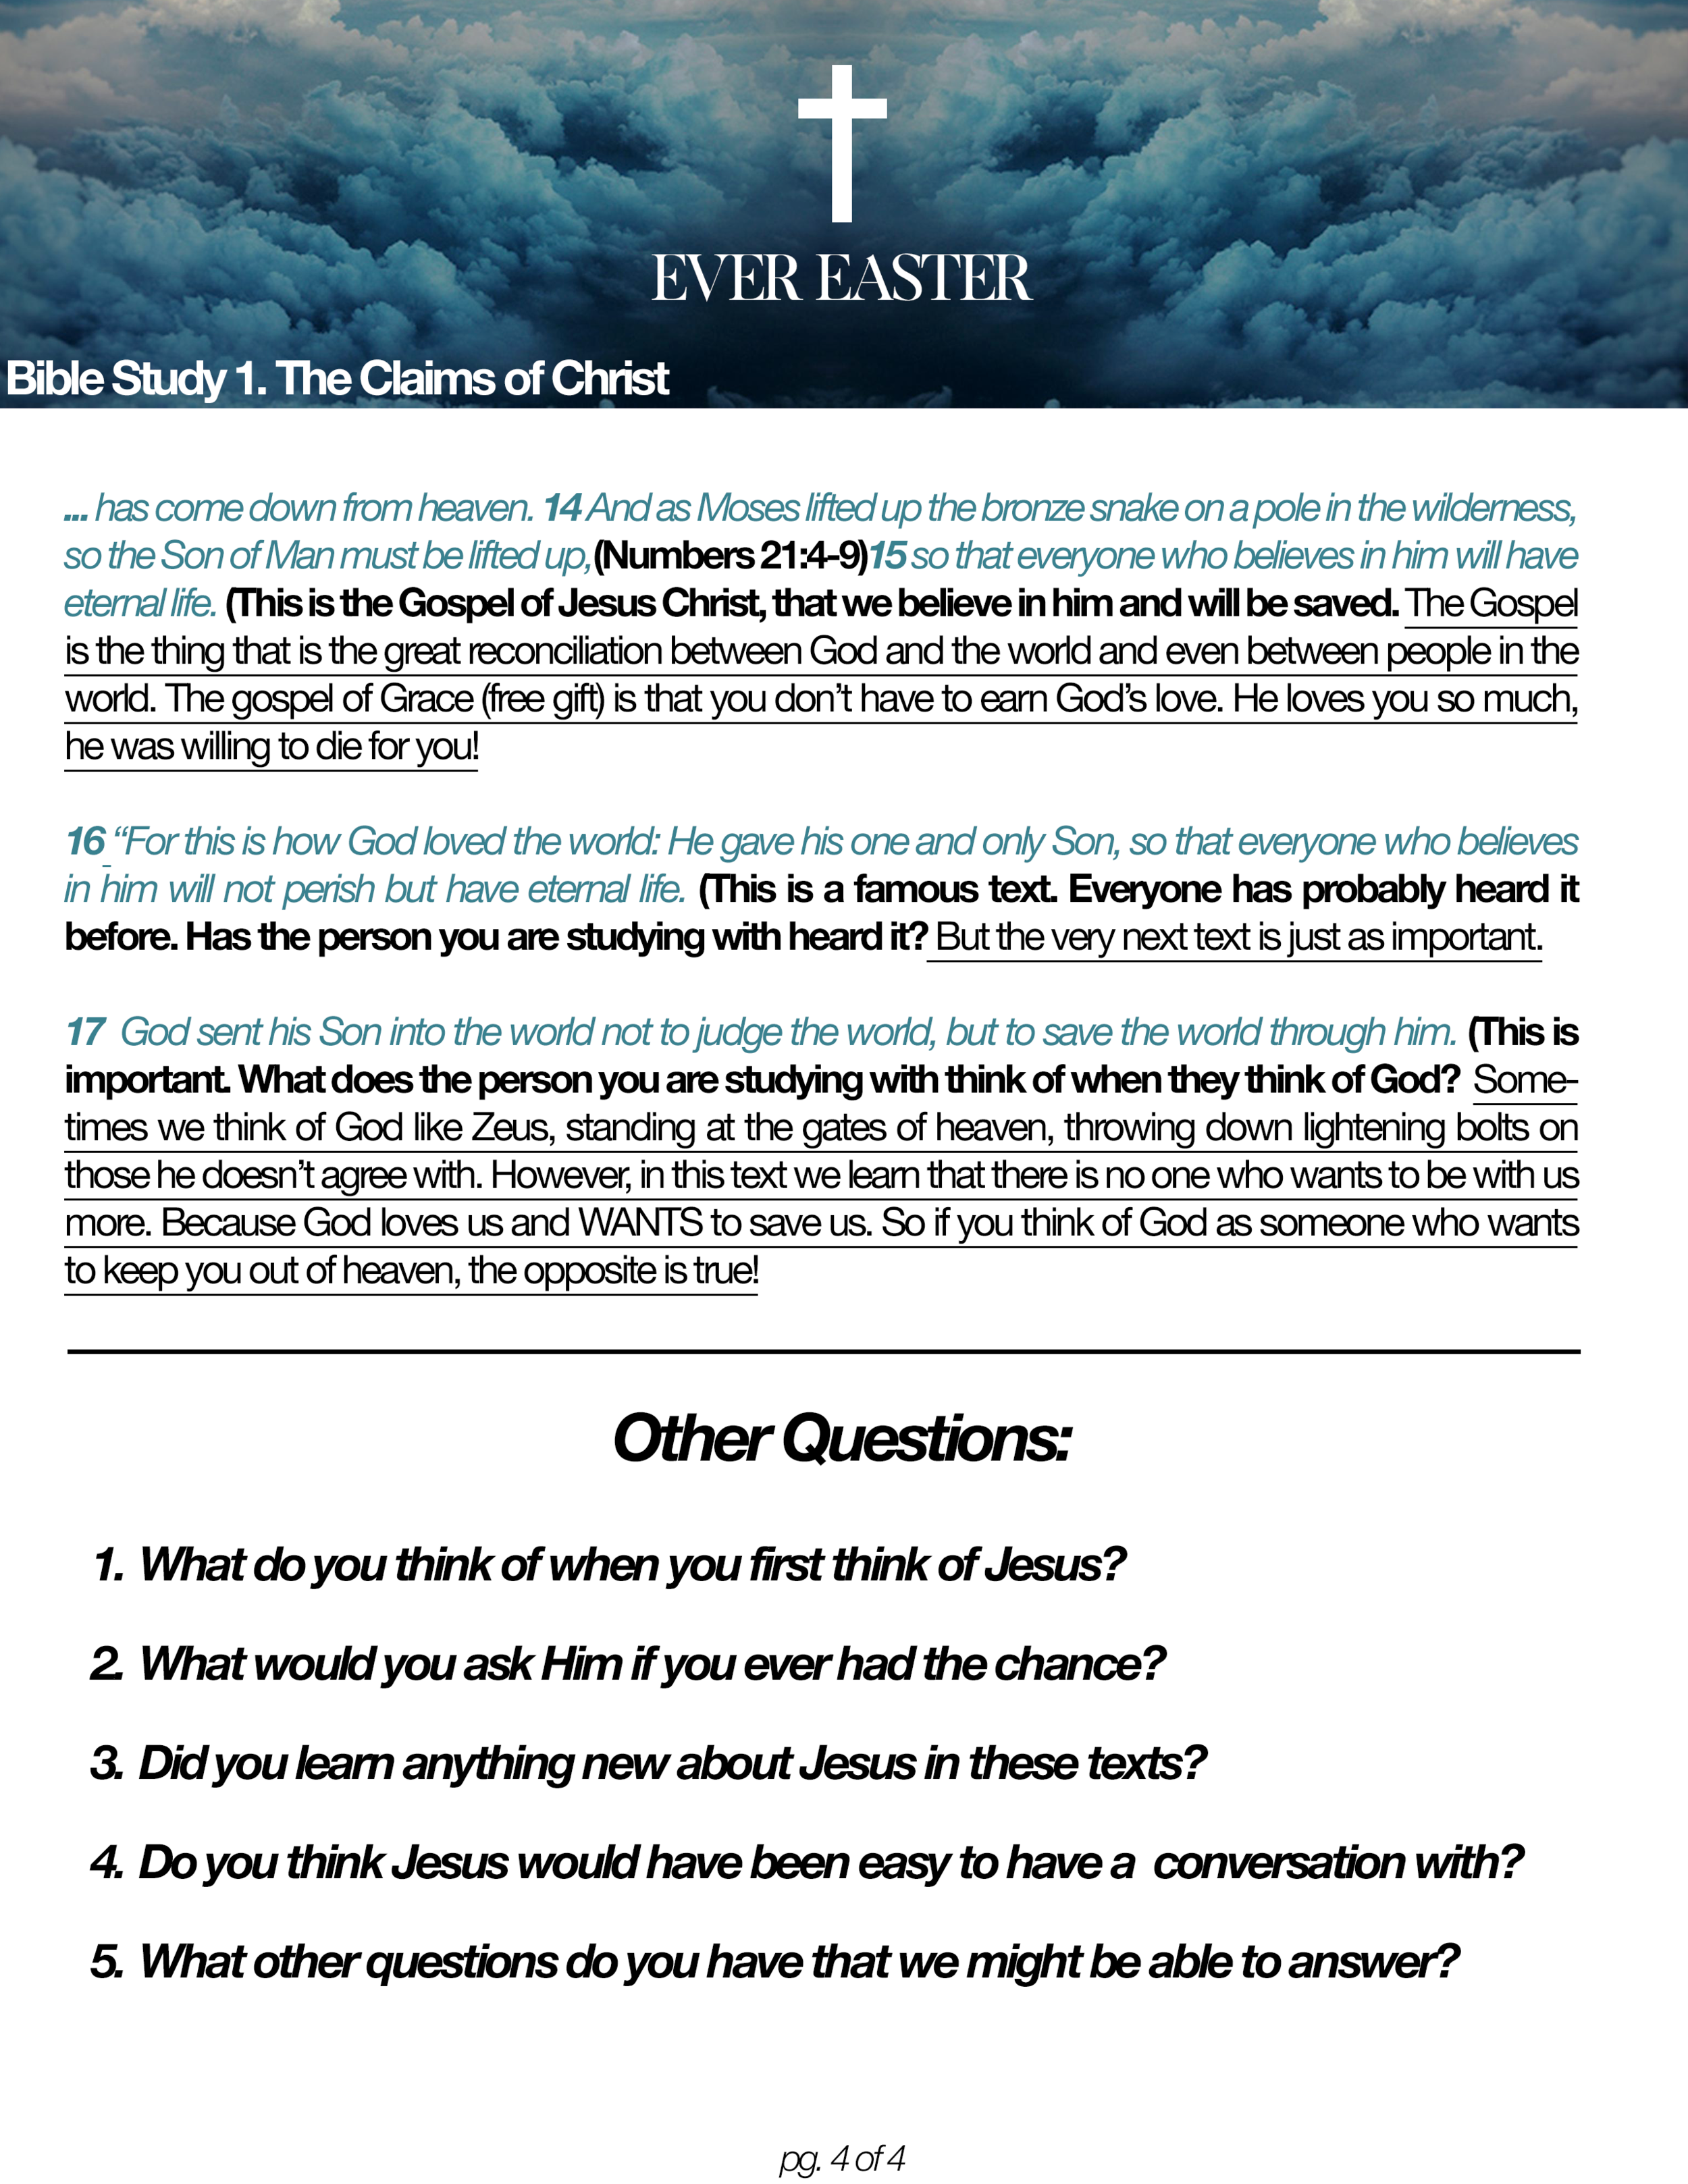 Easter Bible Study 1 (Pg 4).png